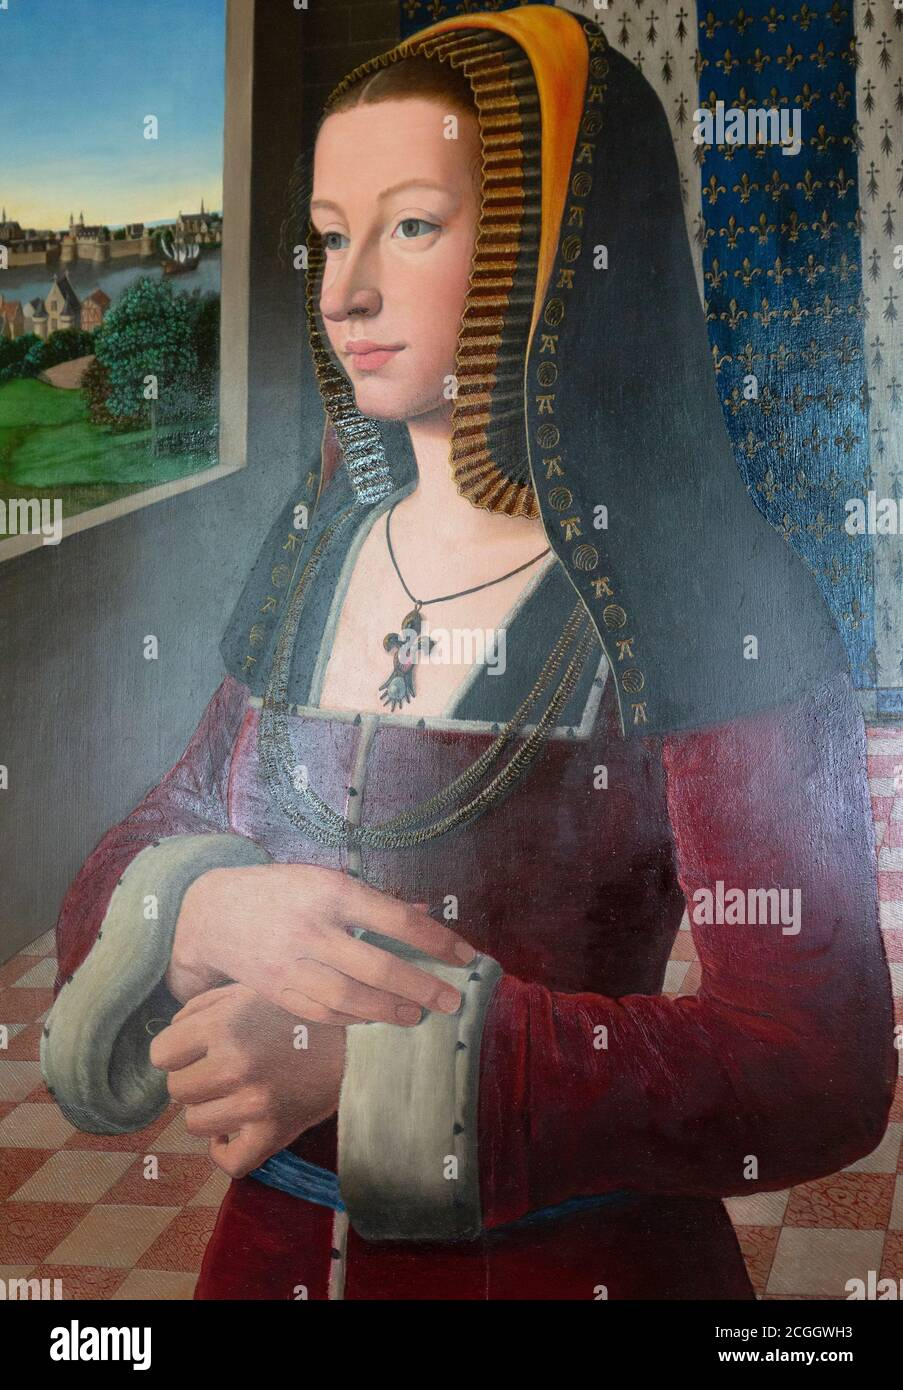 Anne of Brittany (Anne de Bretagne); Duchess of Brittany & Queen Consort of France in the15th century - Portrait painting in Chateau D'Amboise, France Stock Photo